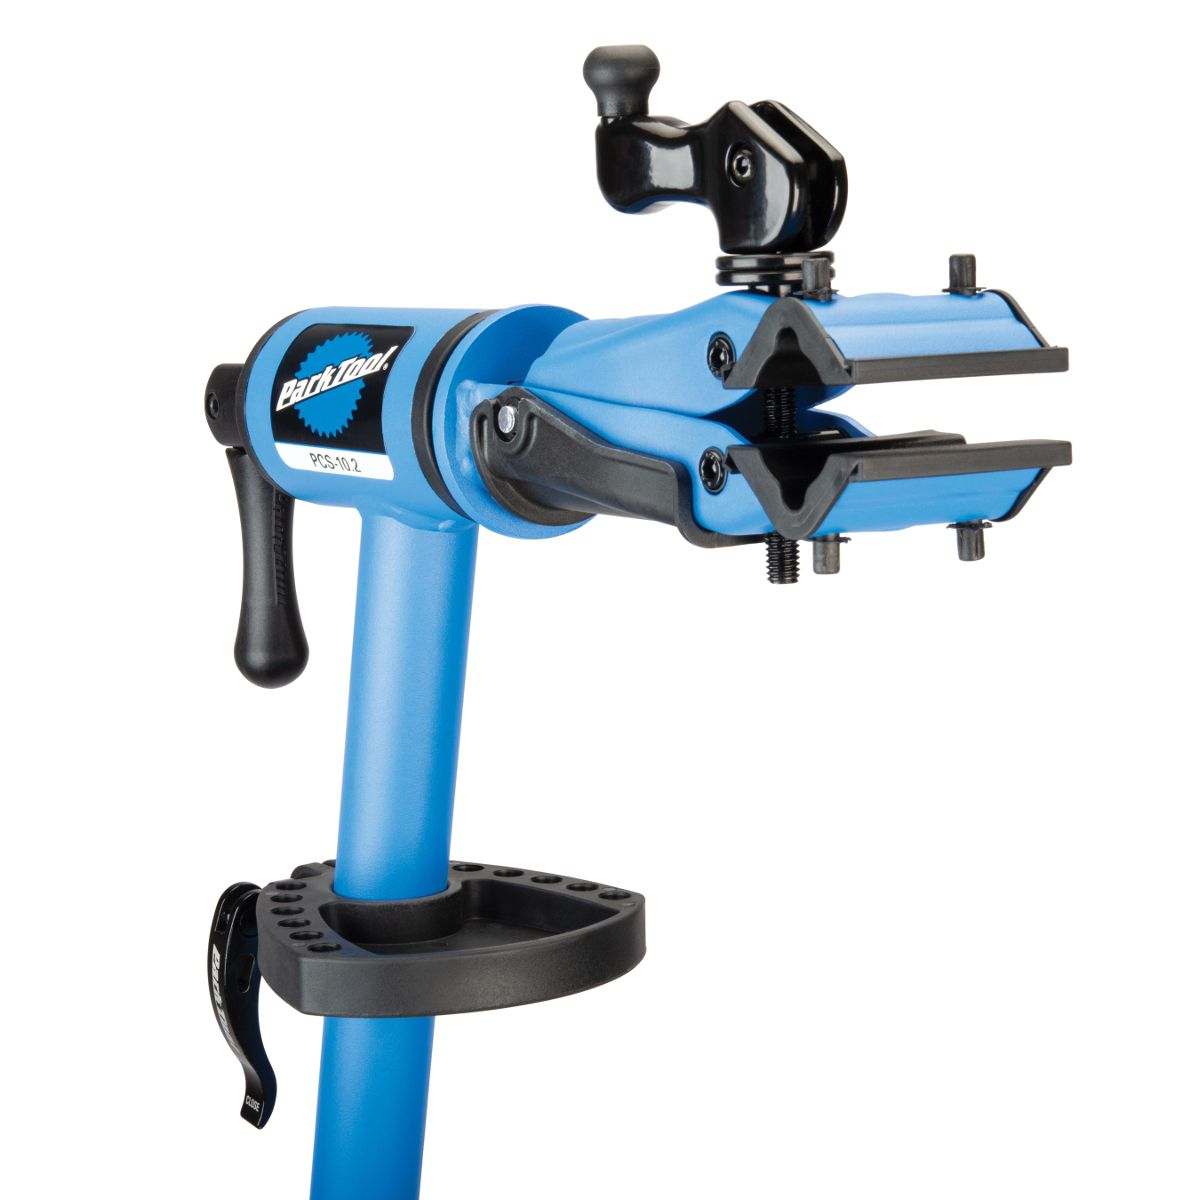 Buy Park Tool Pcs 10 2 Bicycle Workstand With Tool Tray